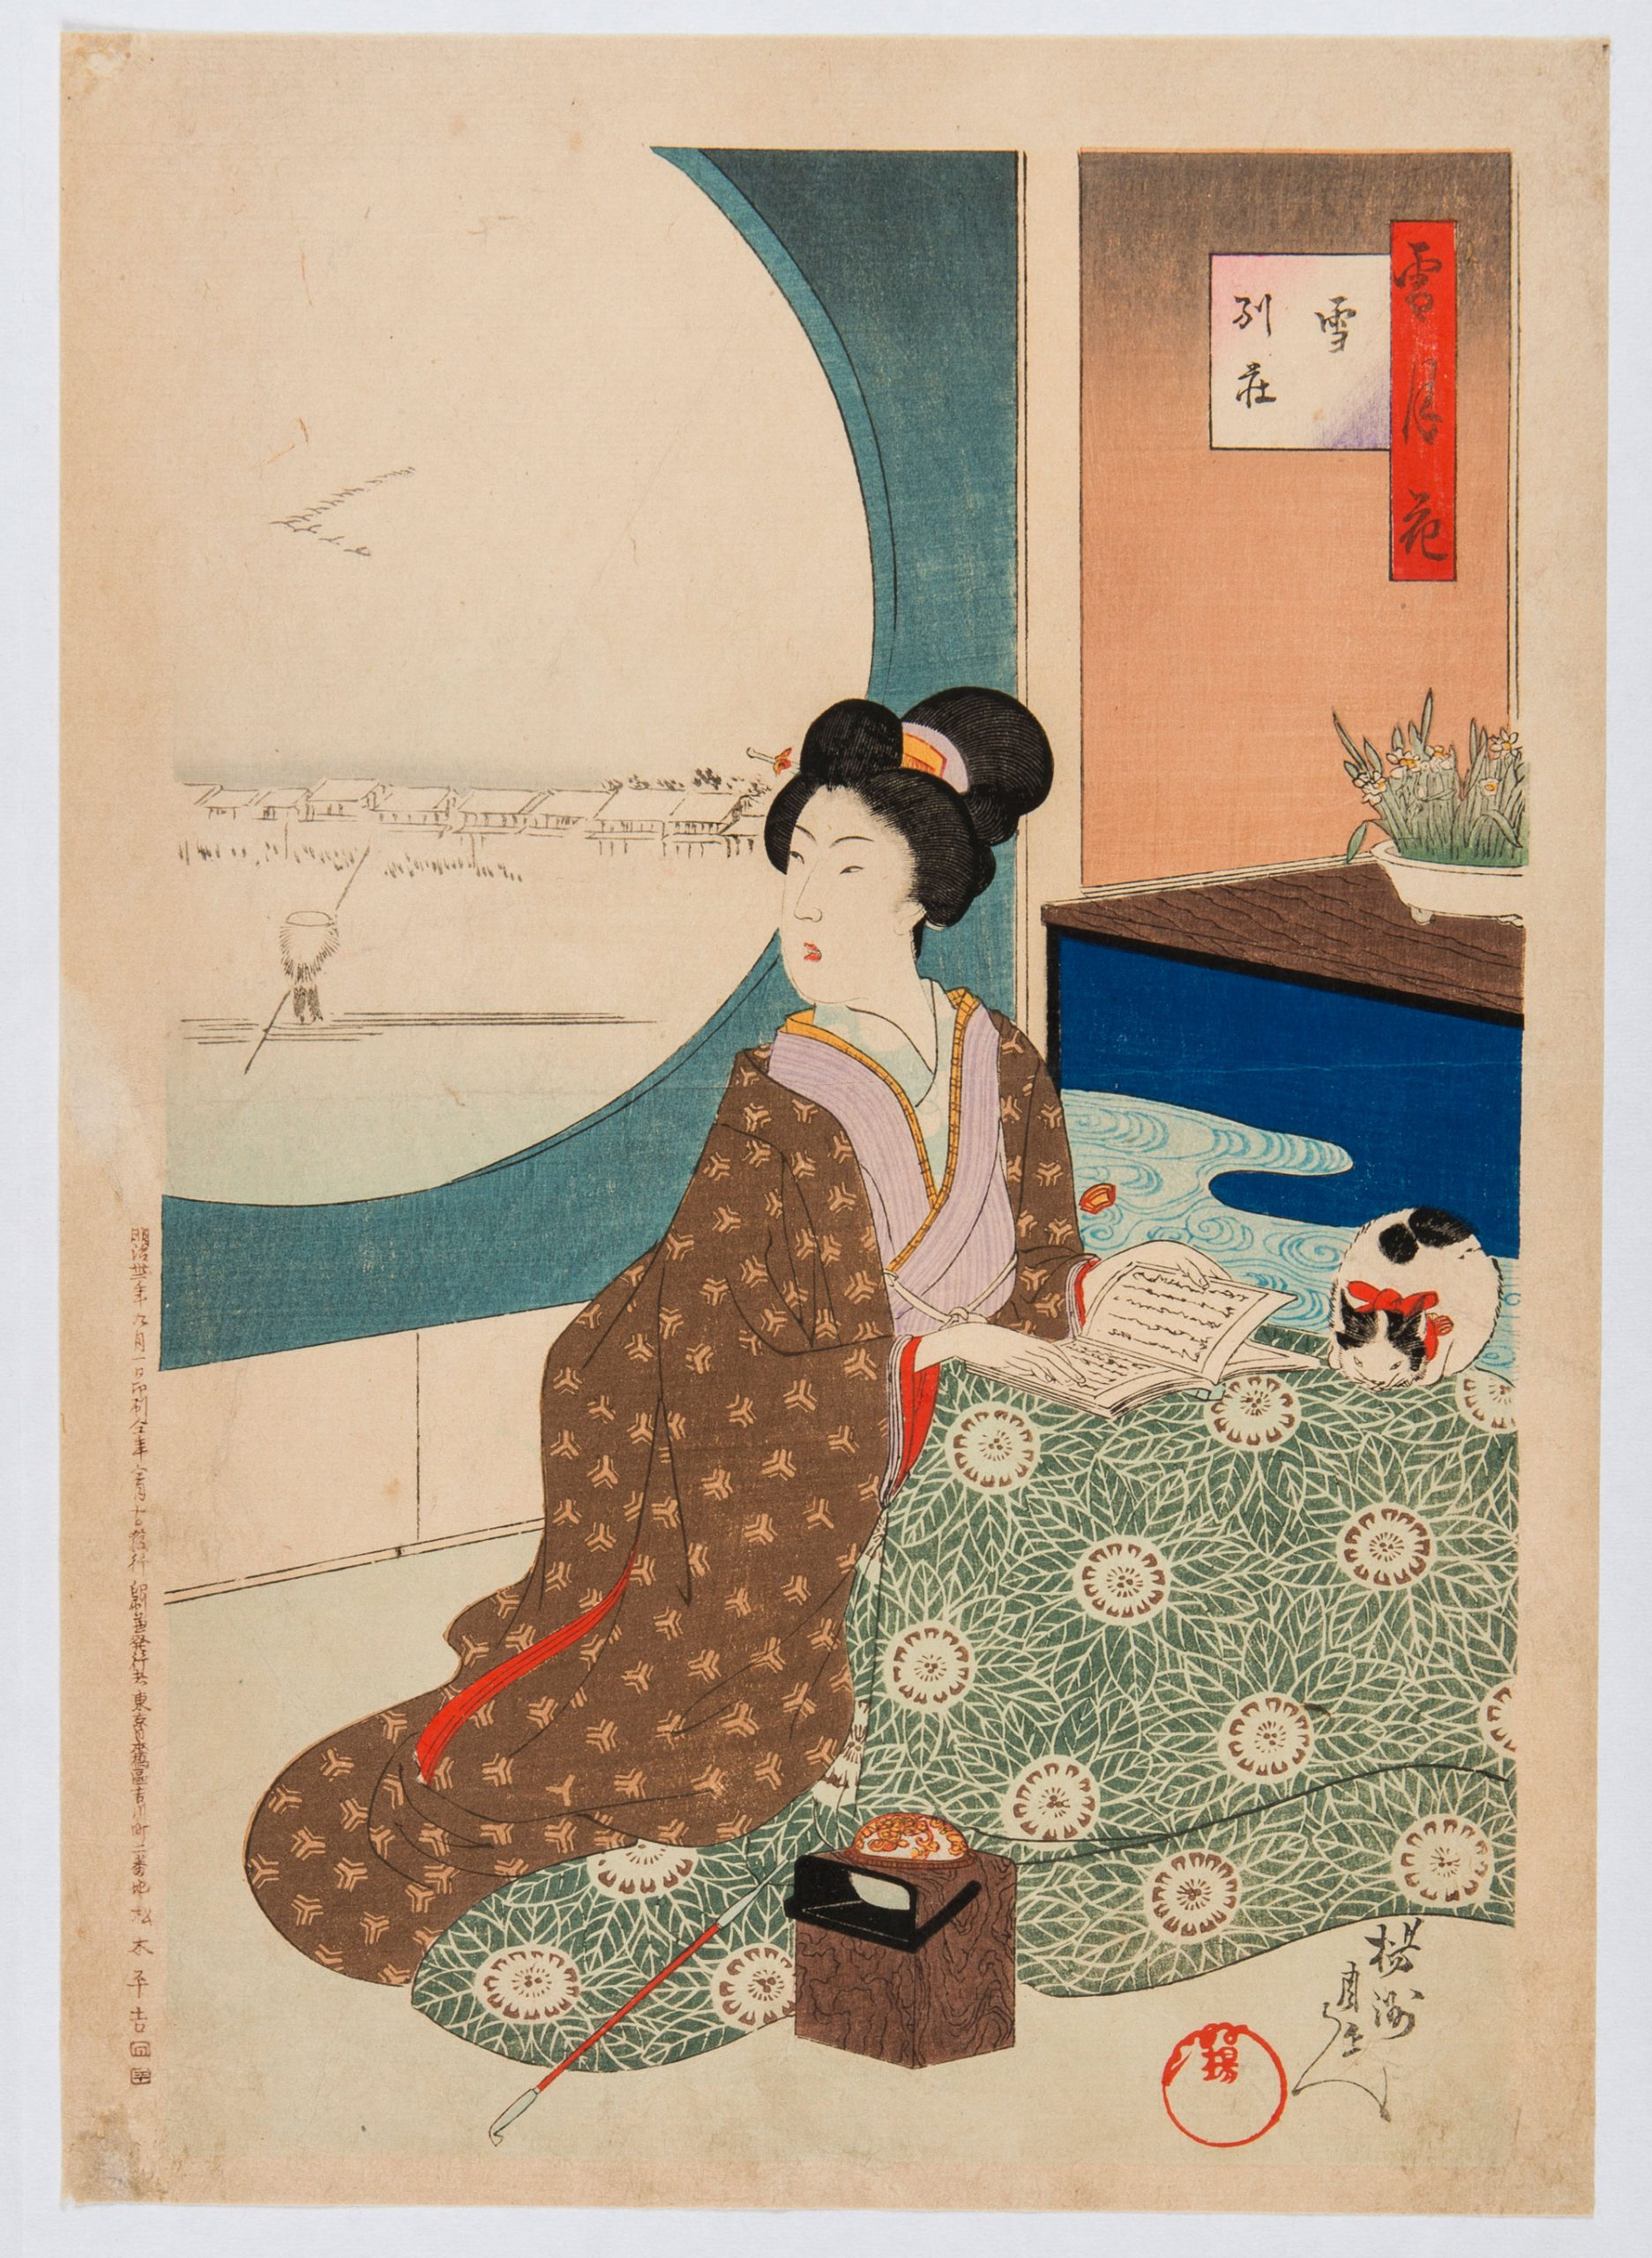 A woodblock print of a seated woman and a cat